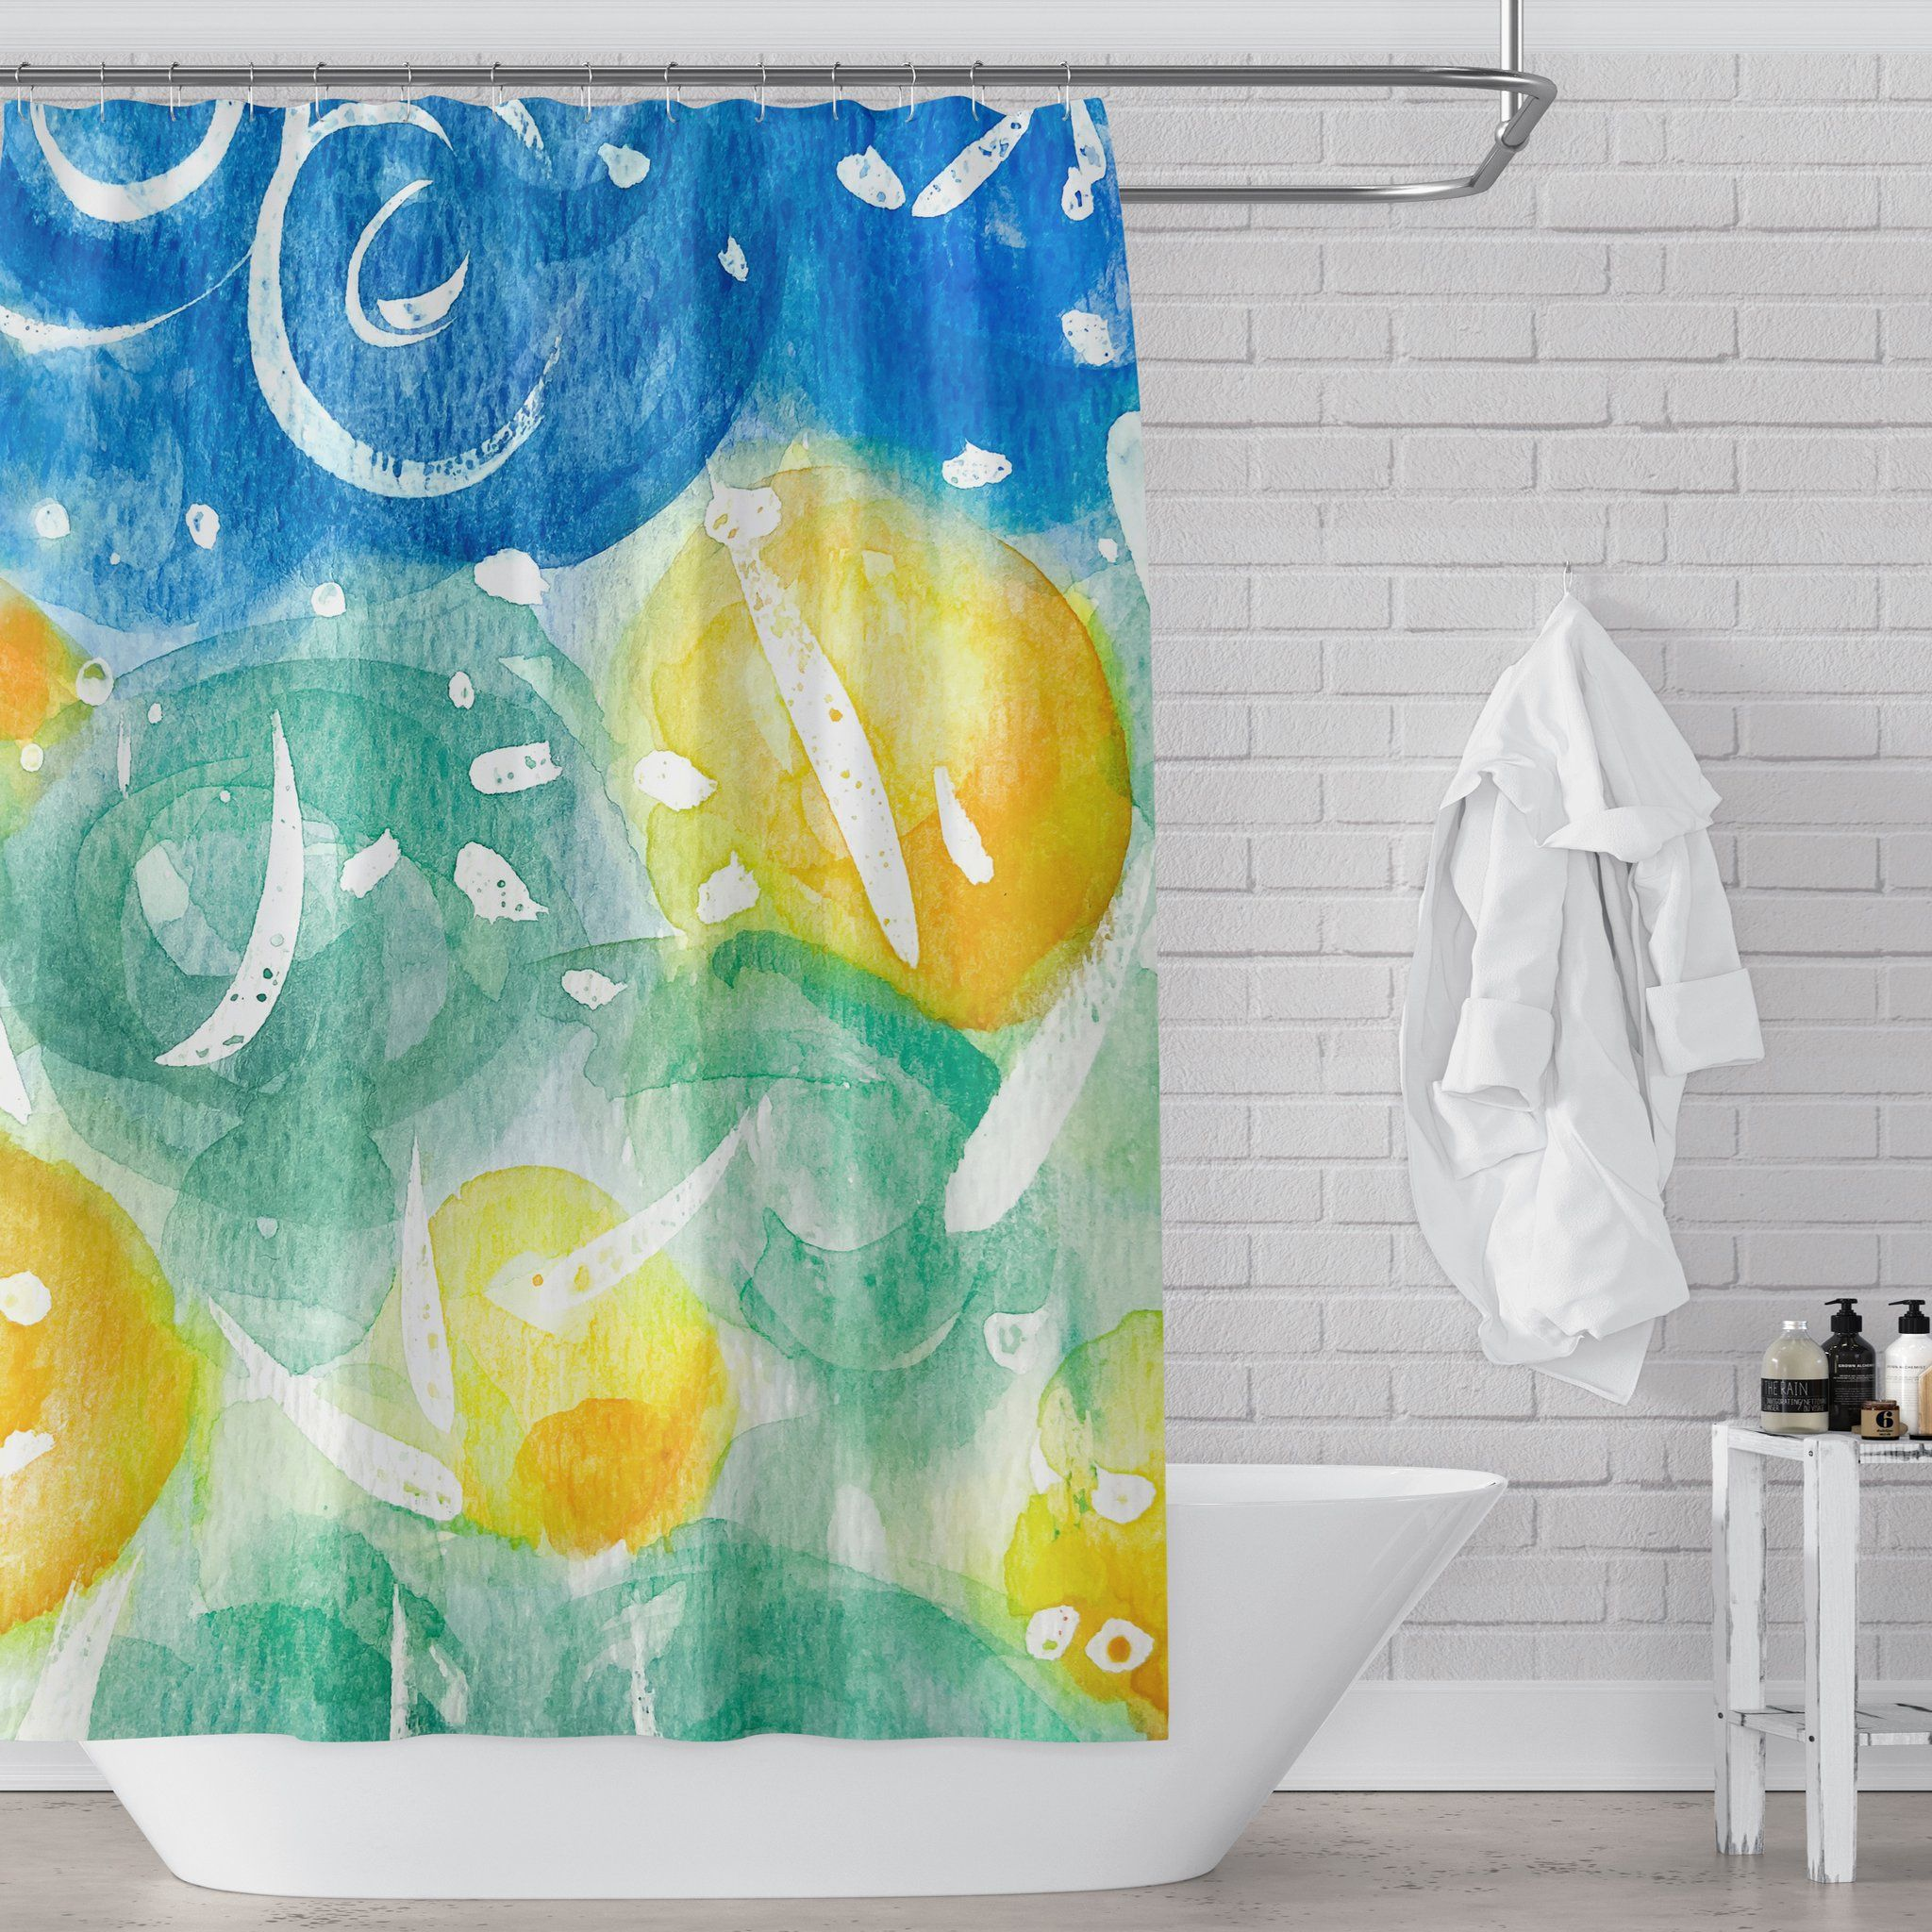 Field Of Sunshine Bright And Colorful Watercolor Art Shower Curtain In 2020 Floral Bathroom Ideas Watercolor Shower Curtain Kid Bathroom Decor